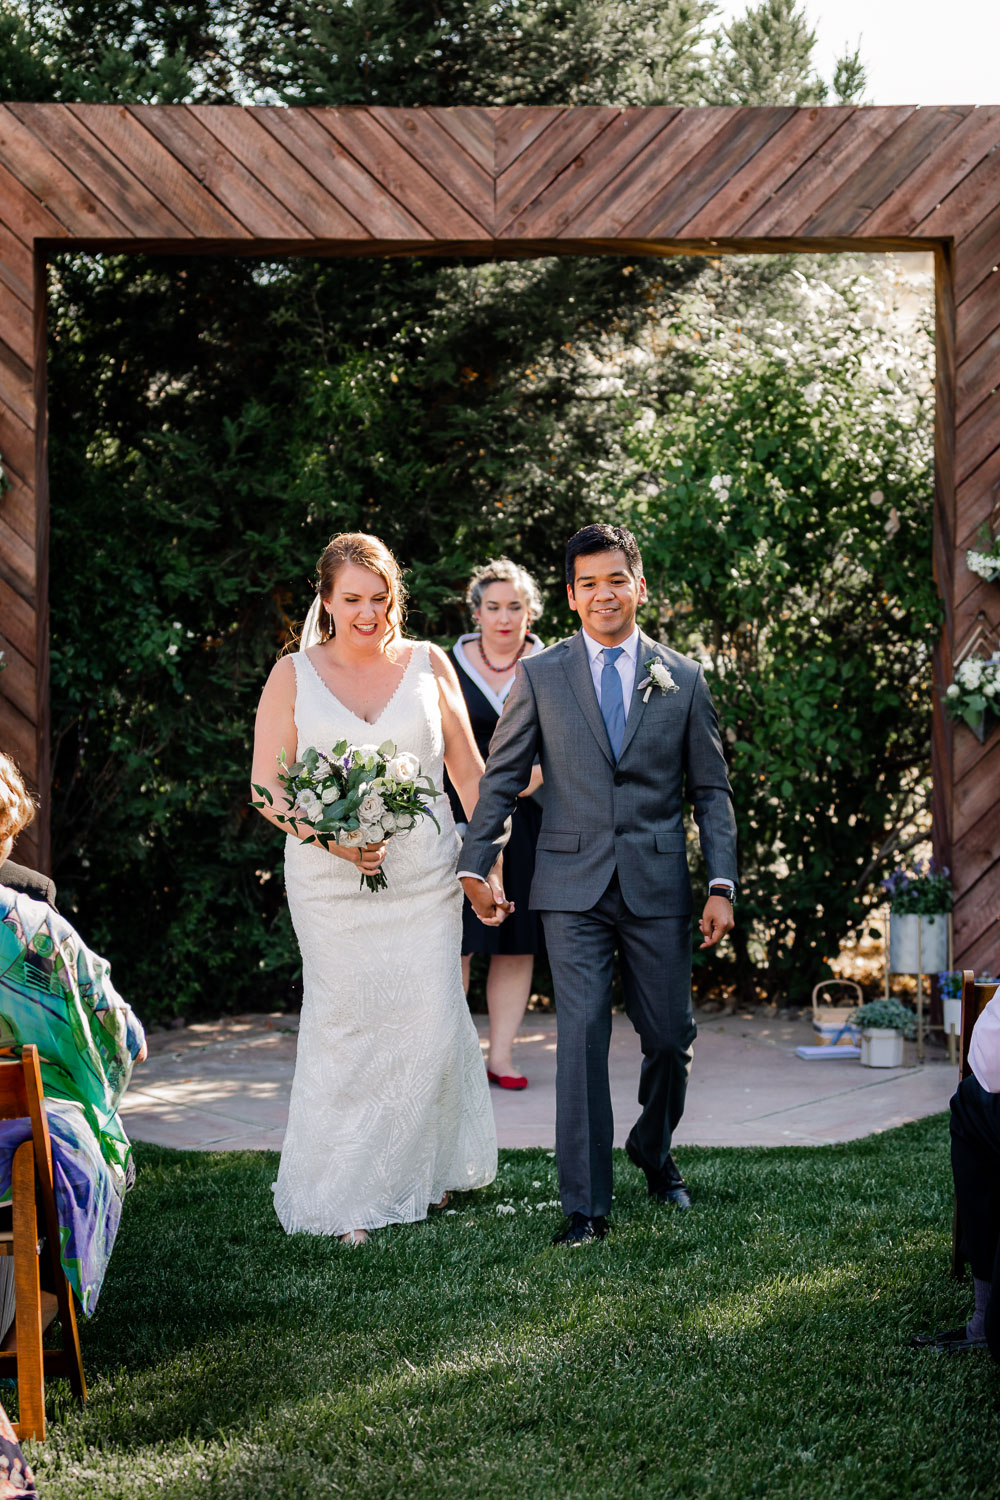 Best-Paso-Robles-California-Wedding-Photographer-216.jpg